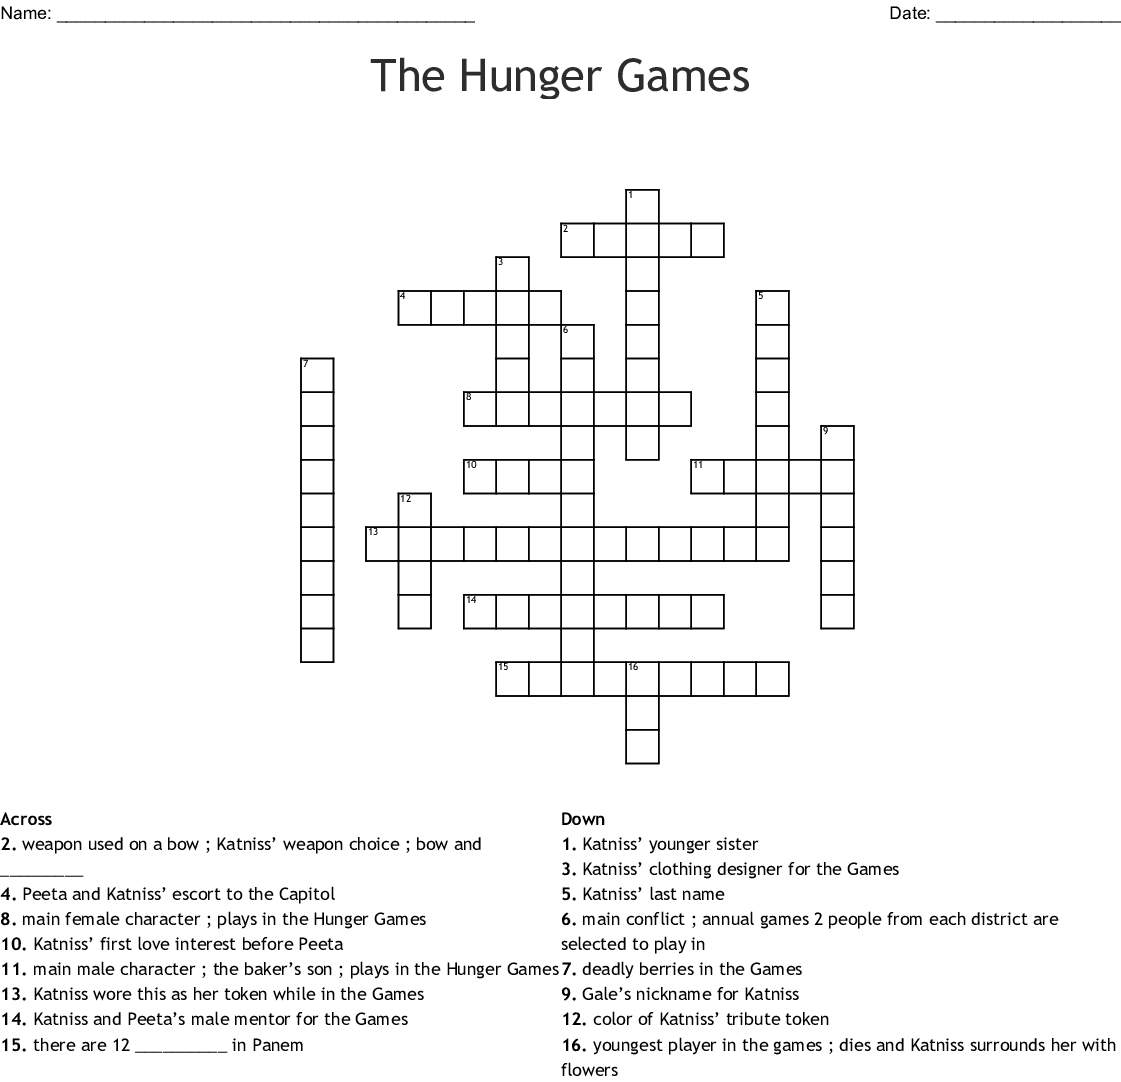 The Hunger Games Crossword